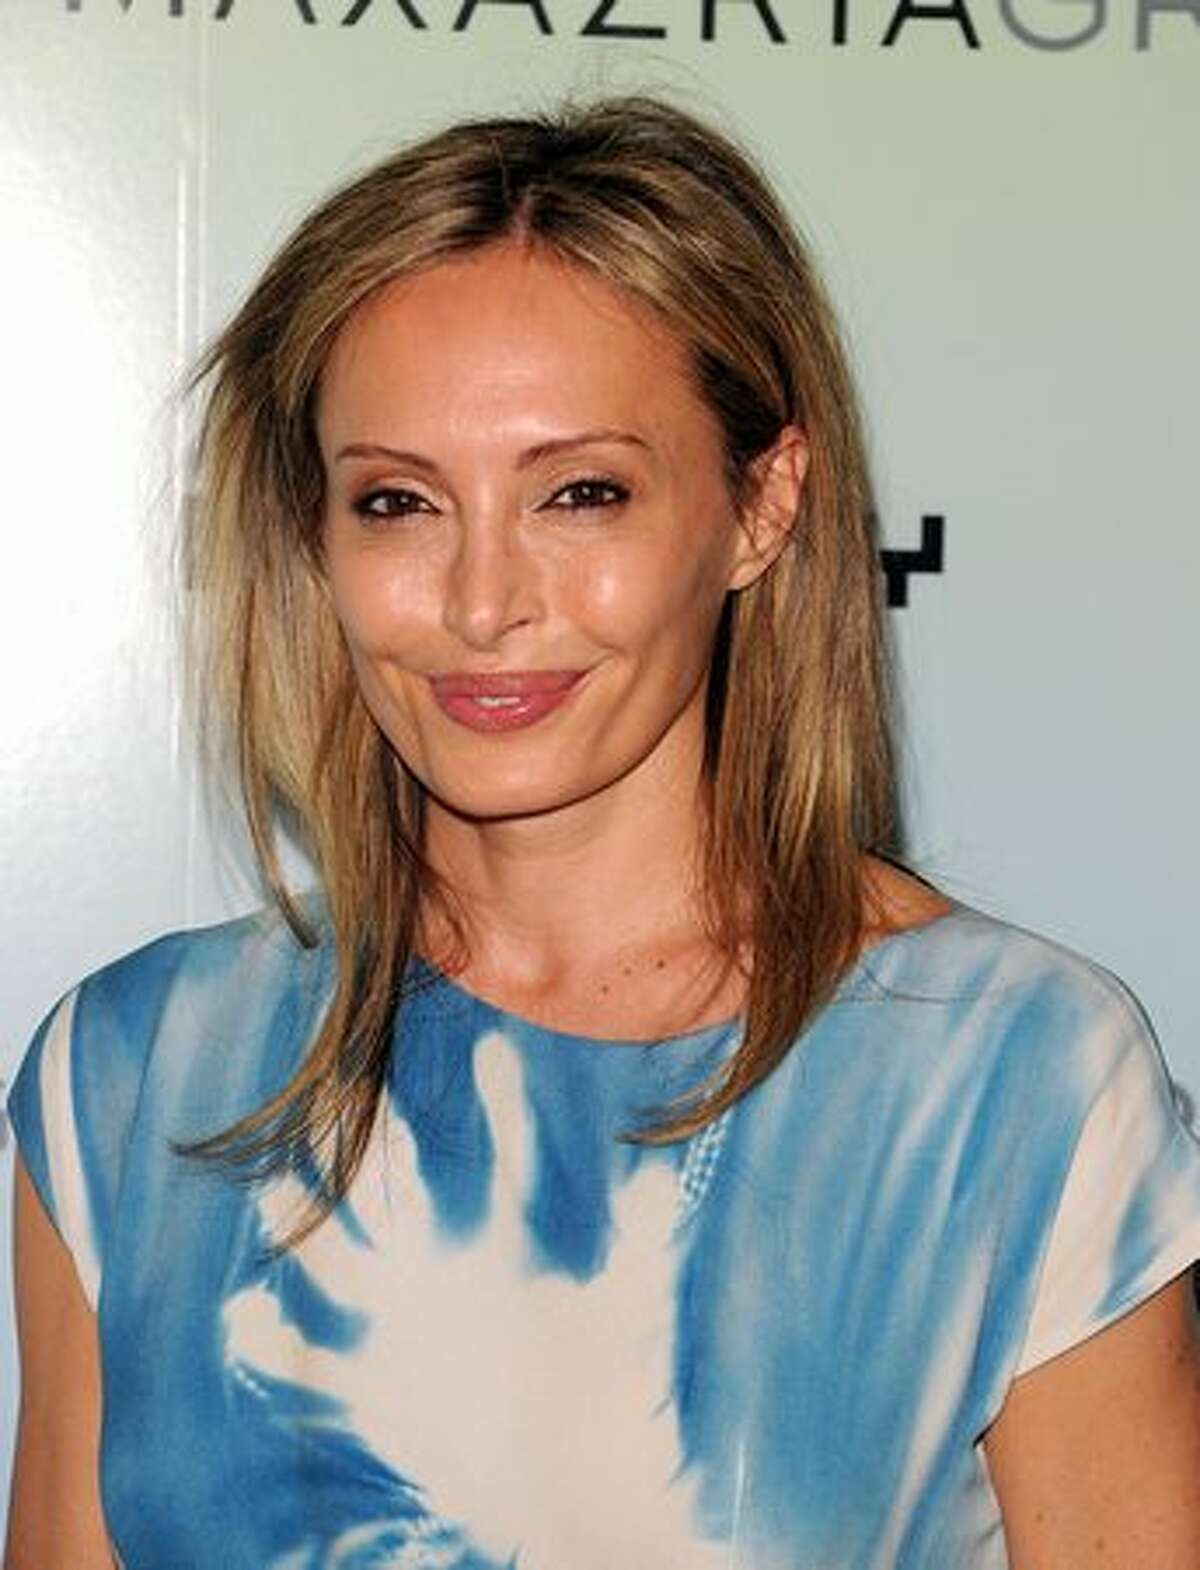 Lubov Azria attends the Whitney Museum Art Party 2010 at 82 Mercer in New York City.